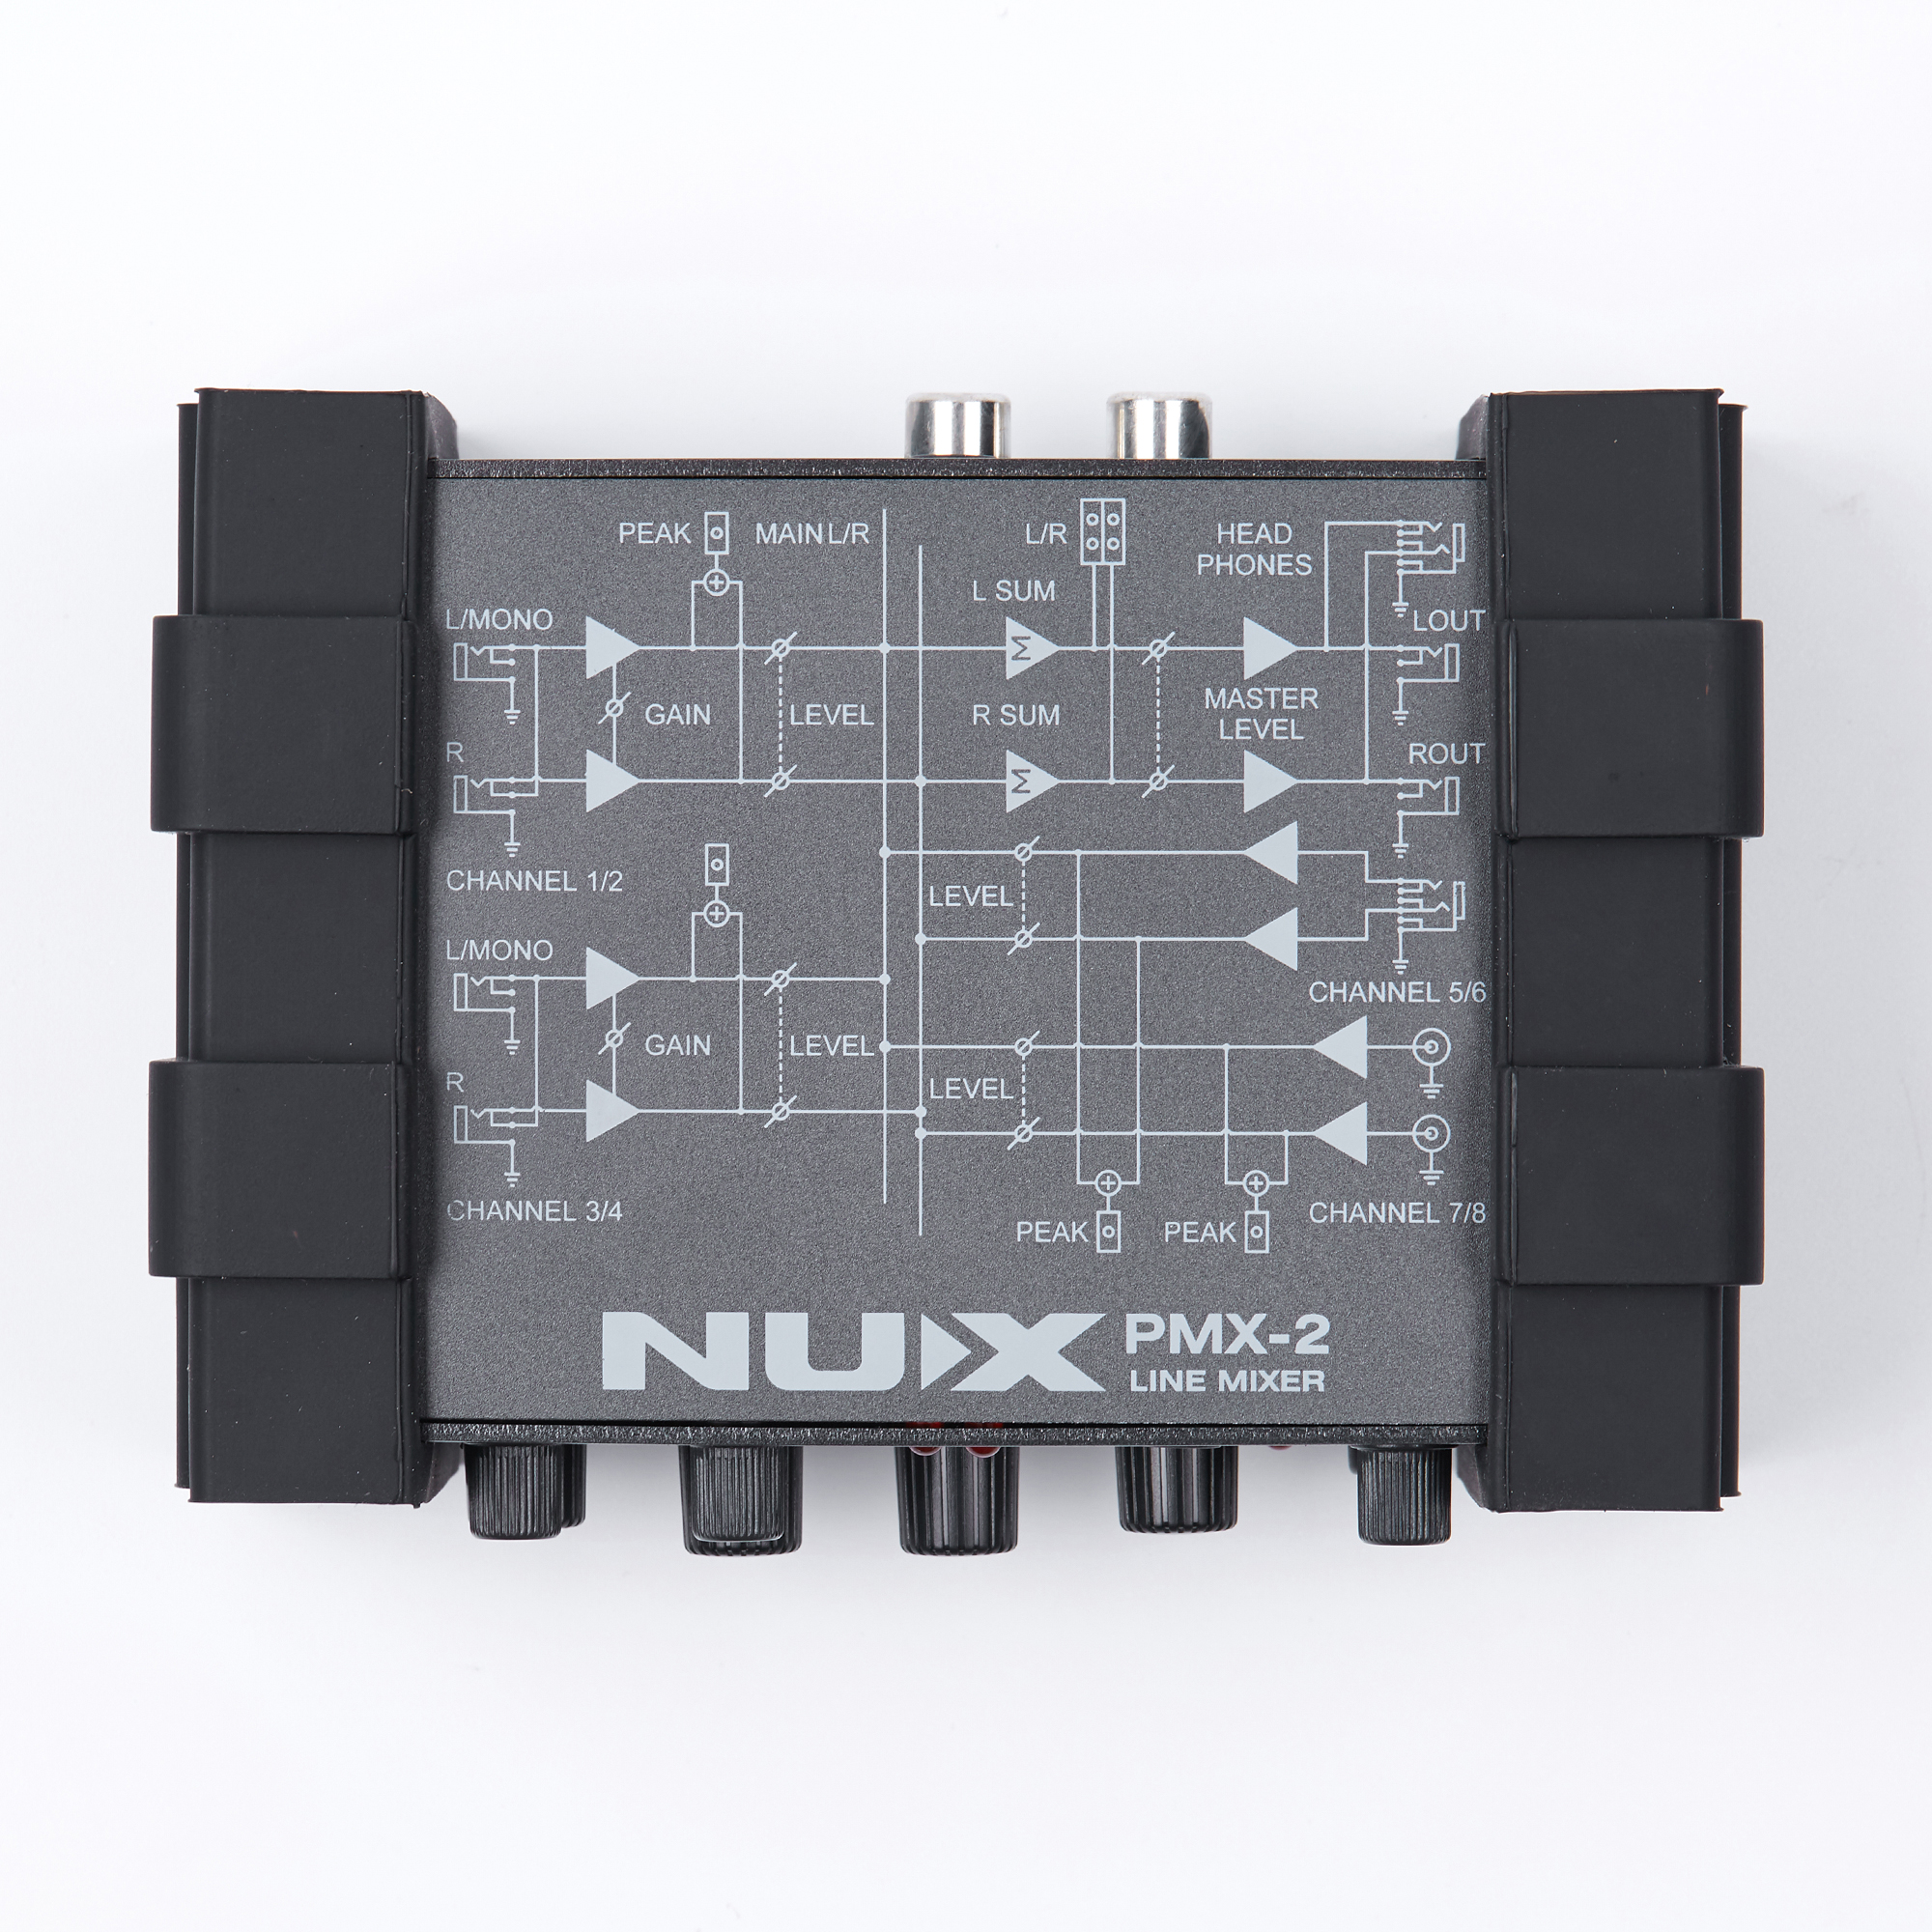 Gain Control 8 Inputs and 2 Outputs NUX PMX-2 Multi-Channel Mini Mixer 30 Musical Instruments Accessories for Guitar Bass Player топотушки защита спинки сиденья автомобиля